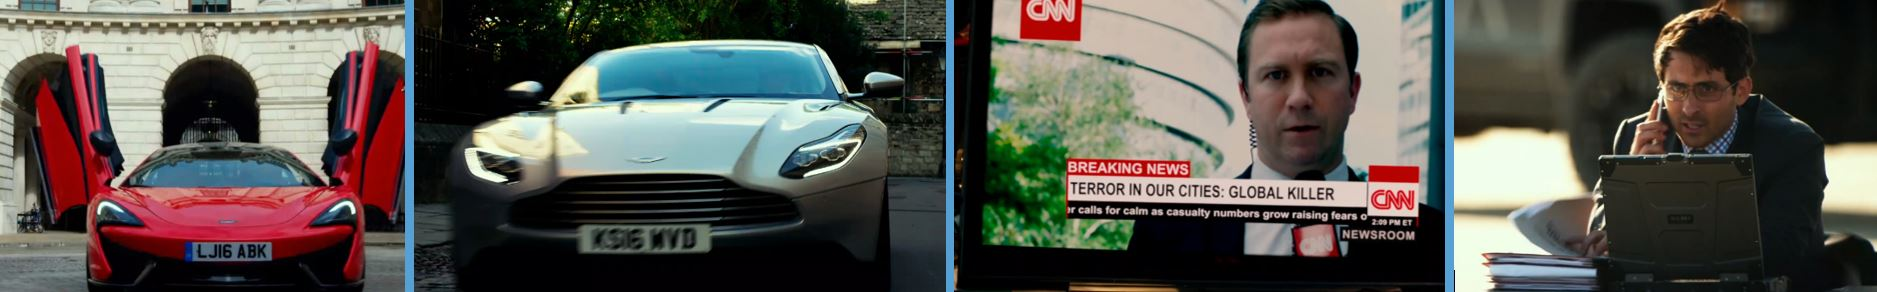 transformers the last knight product placement concave brand tracking mclaren aston martin CNN getac